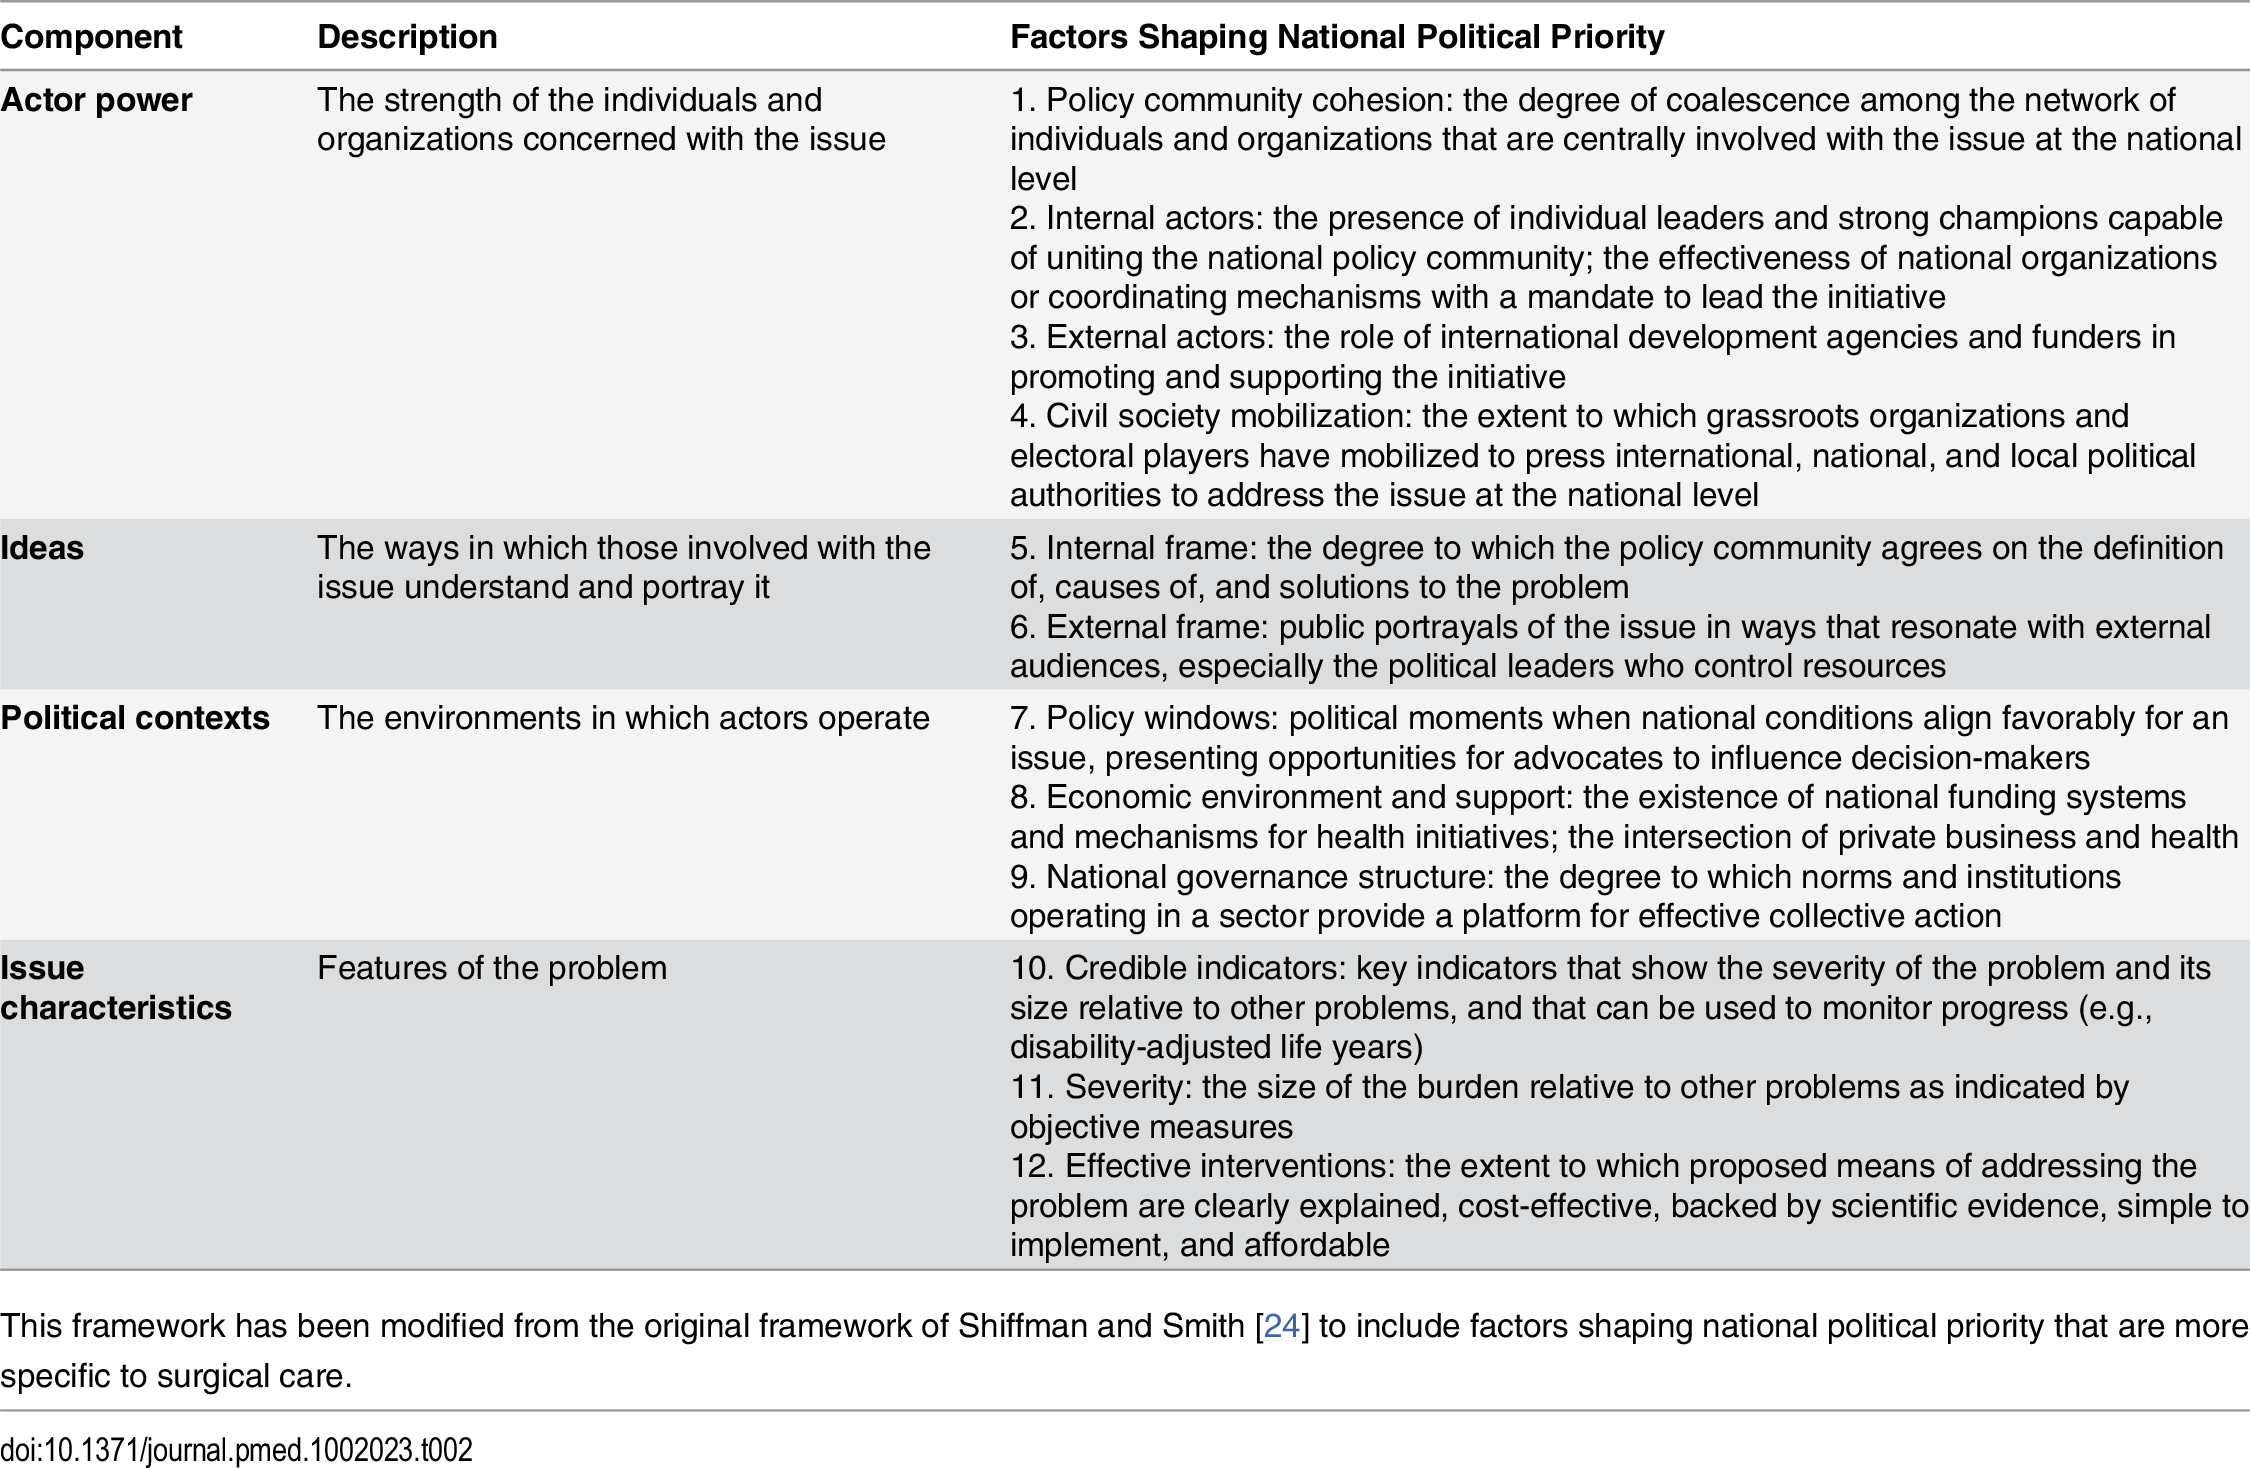 Conceptual framework for understanding factors shaping political priority for a health issue.